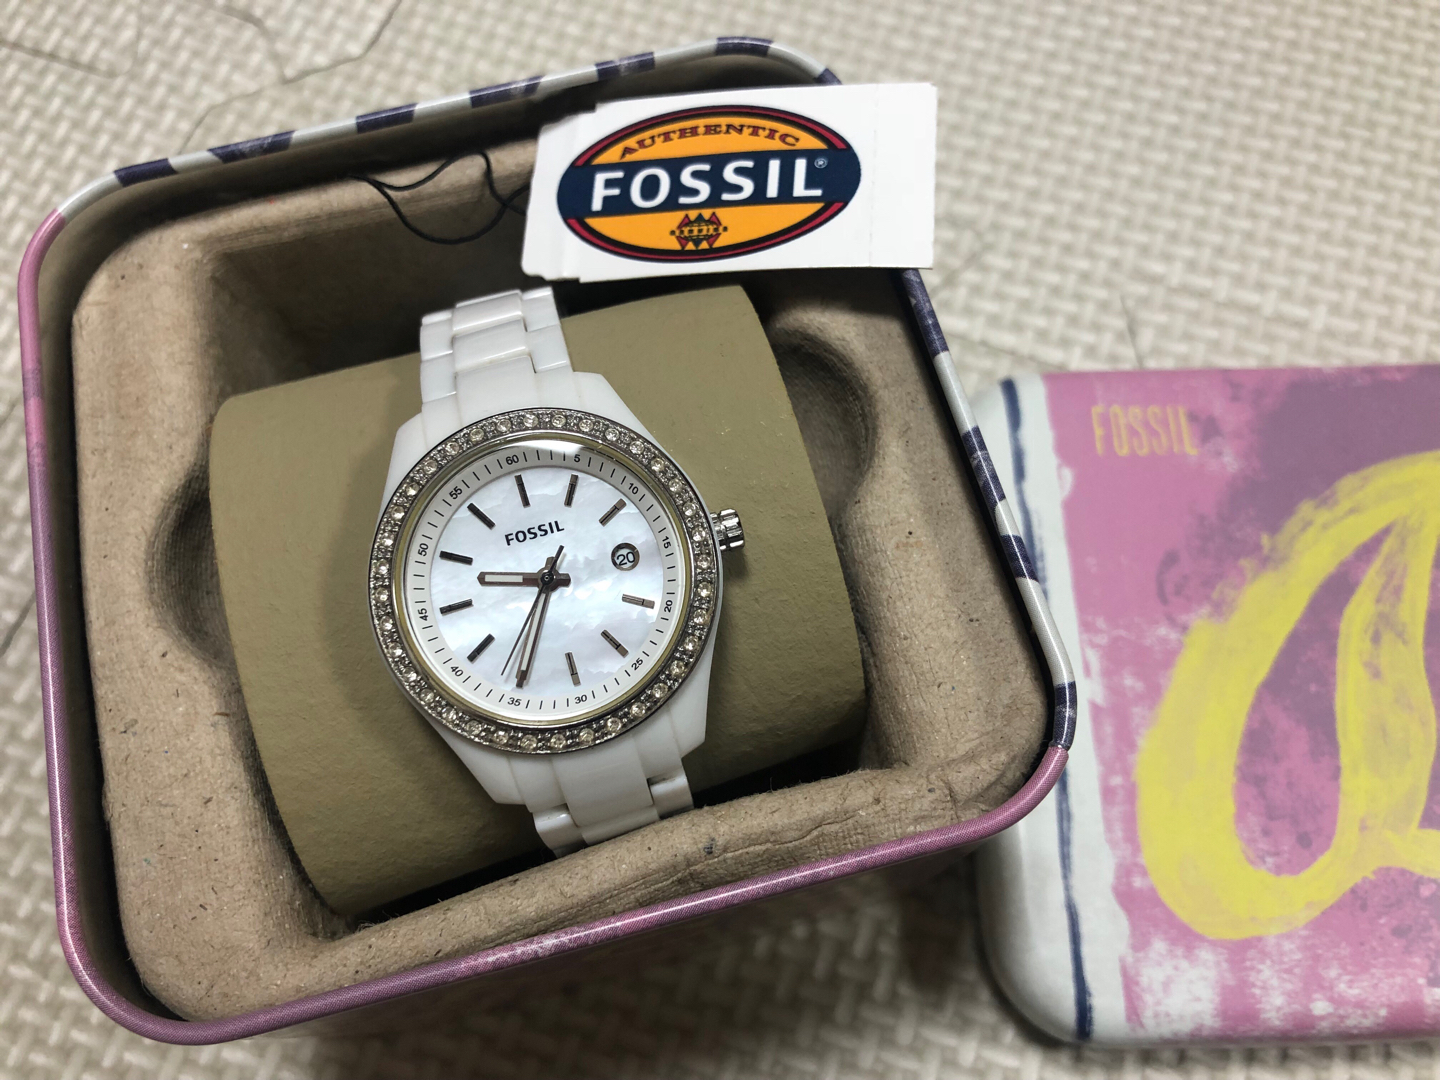 FOSSIL 시계